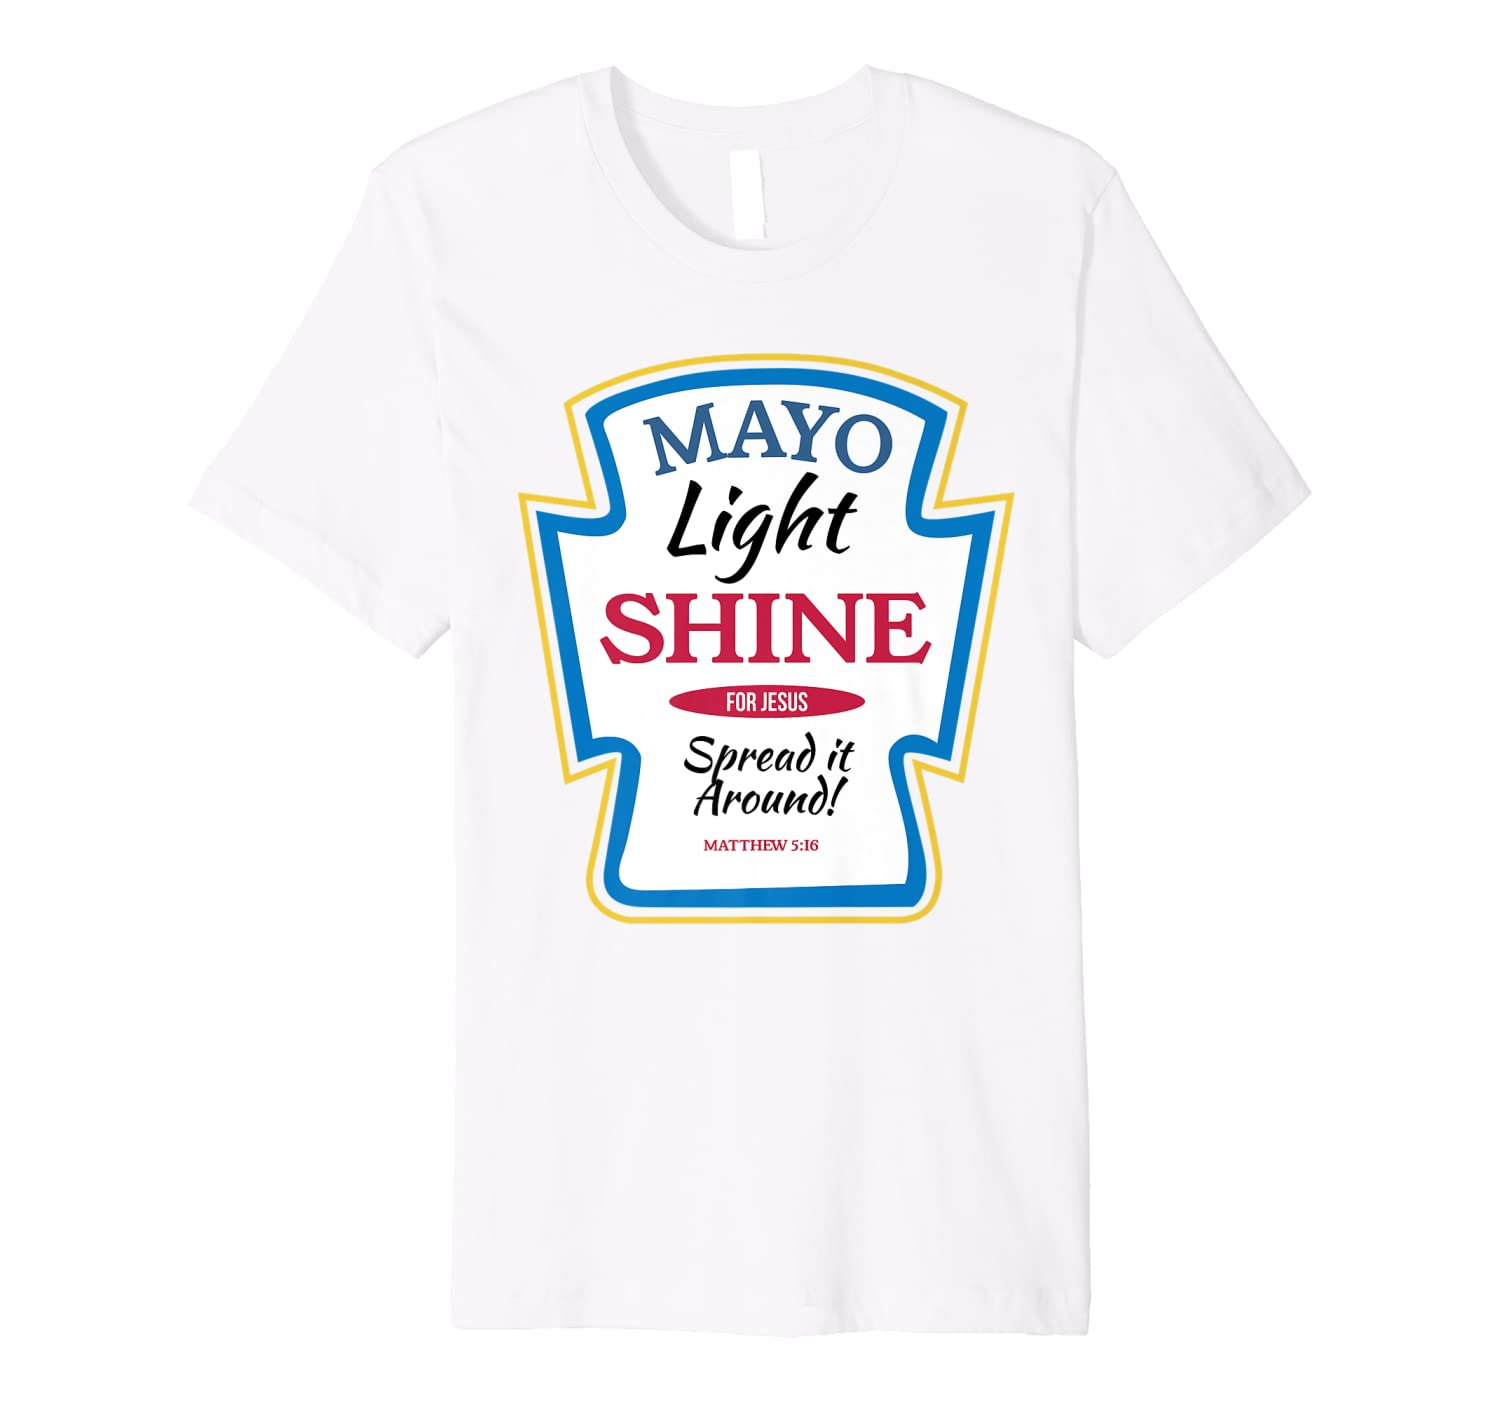 Christian Mayonnaise Mayo Bottle Shirt